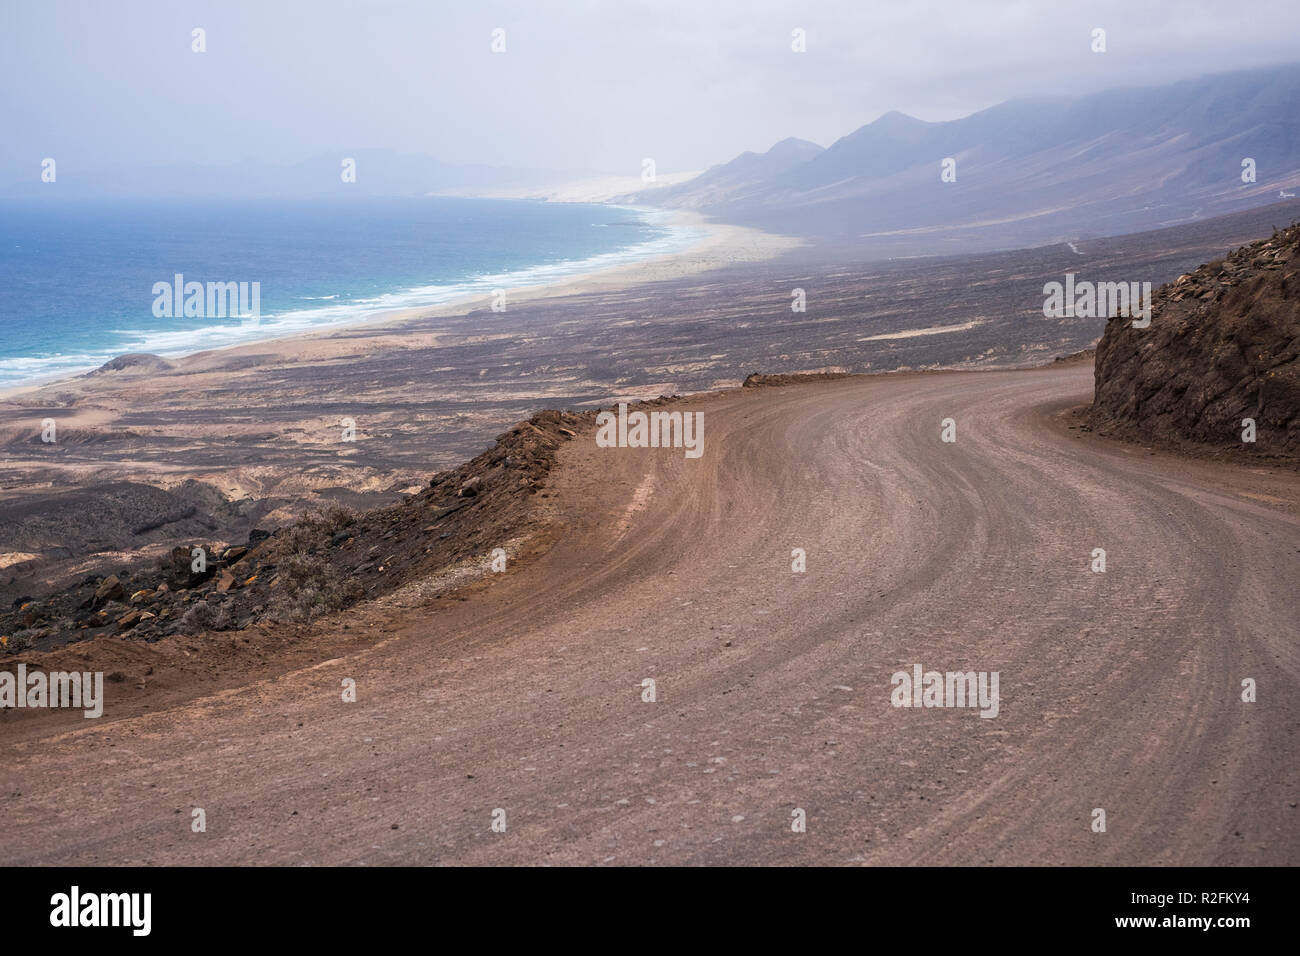 infinite wild beach with nobody there el cofete fuerteventura. paradise for surfers and backpack traveler no asphalt road just ground and adventure. timeless place to live an alternative lifestyle Stock Photo